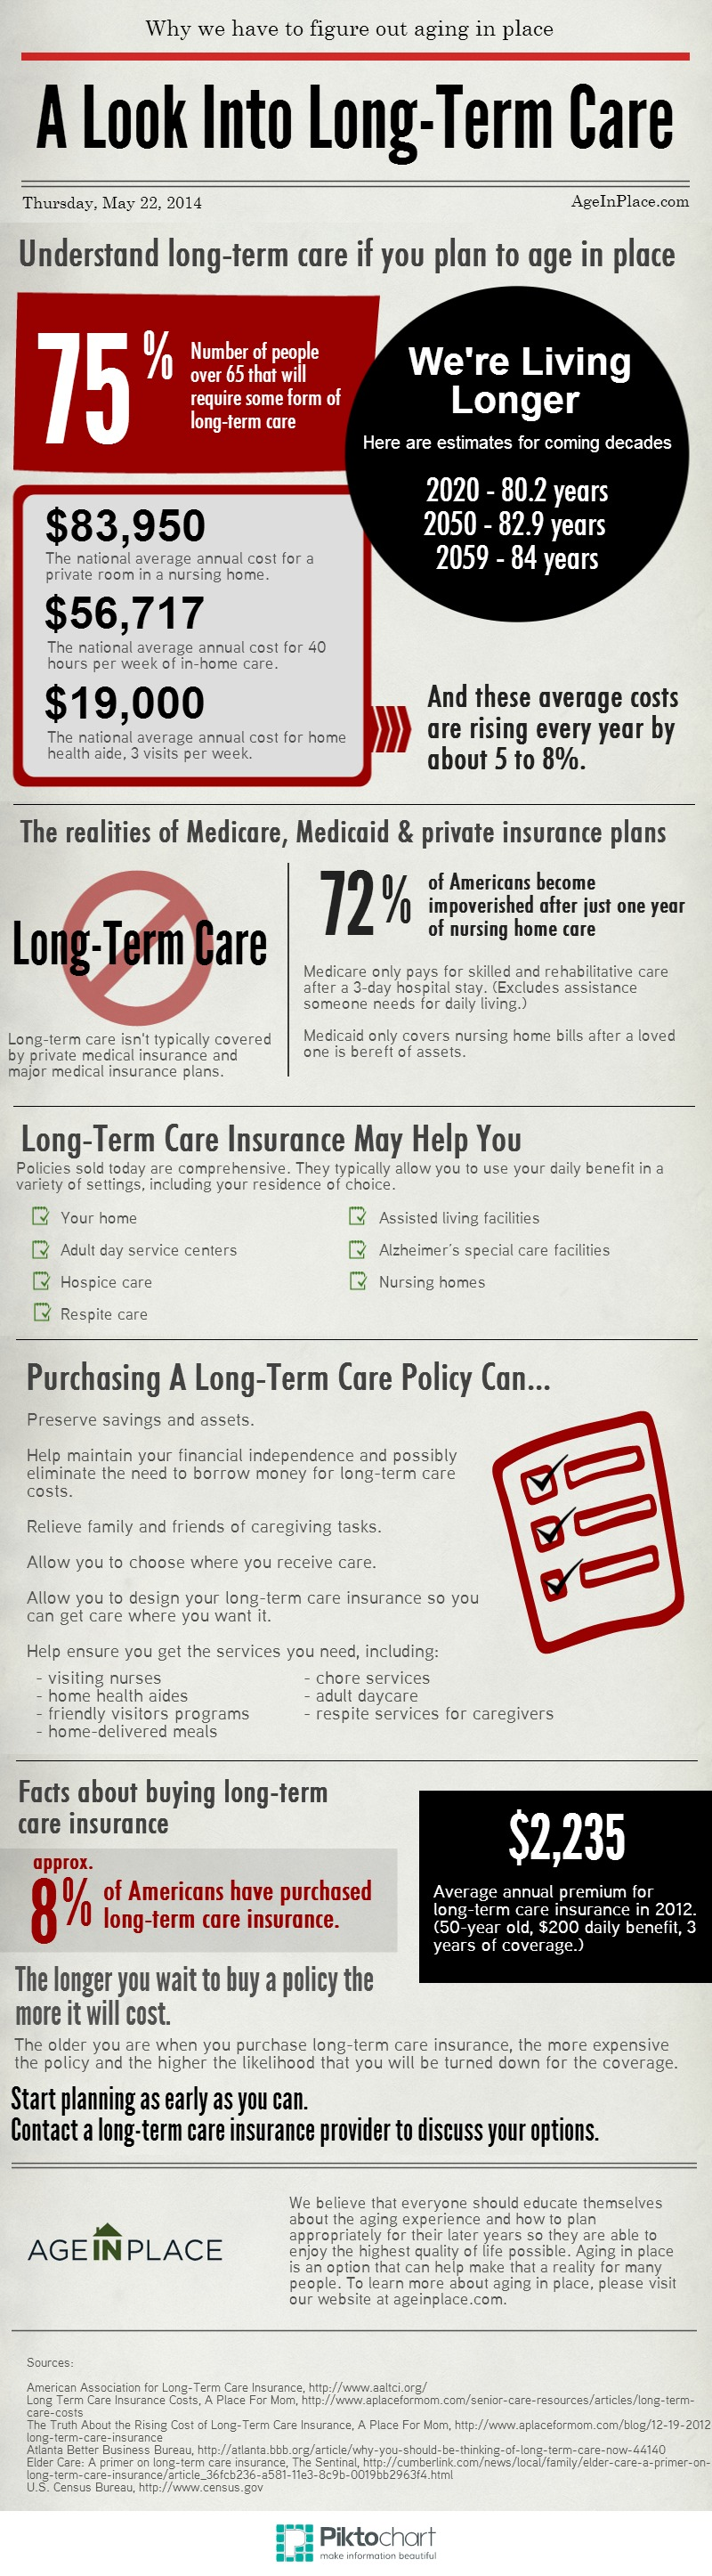 long-term-care-infographic